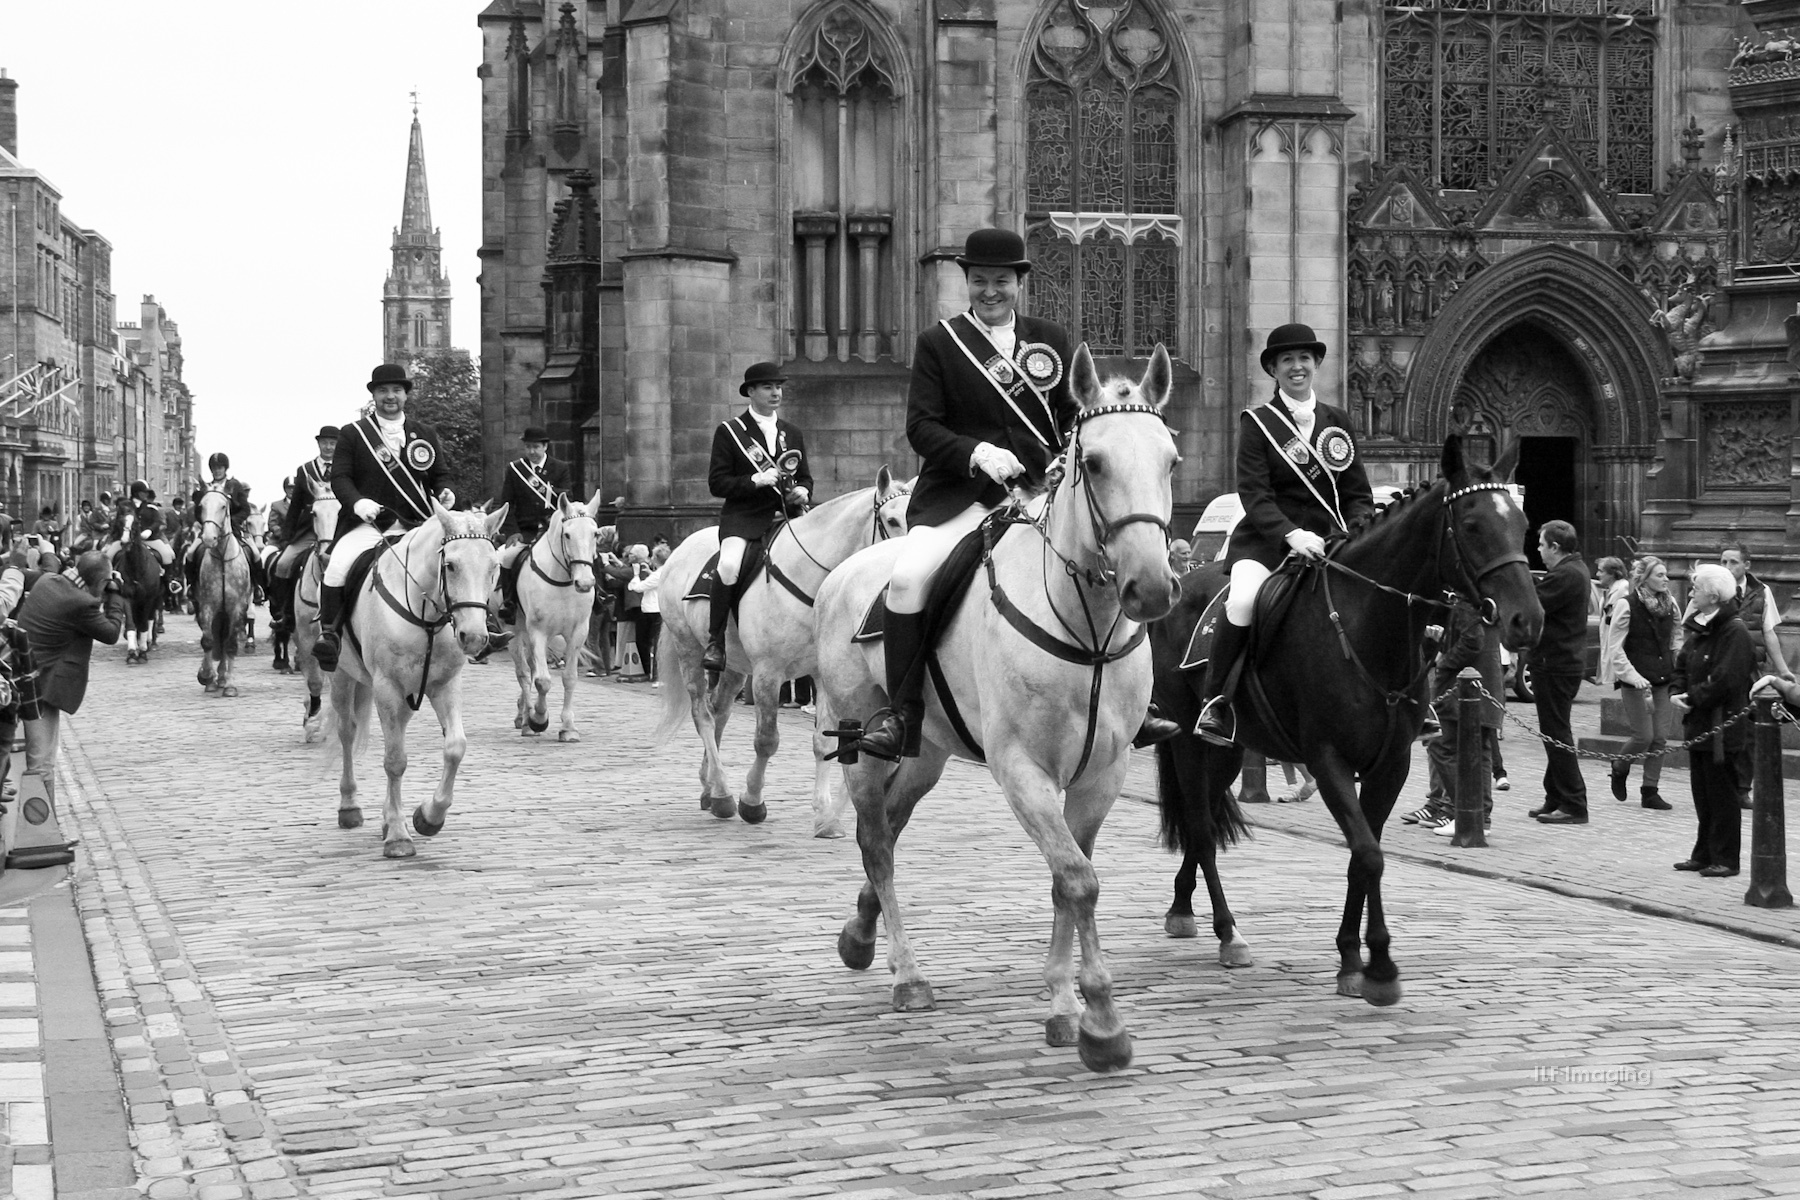 2014 Edinburgh Riding of the Marches